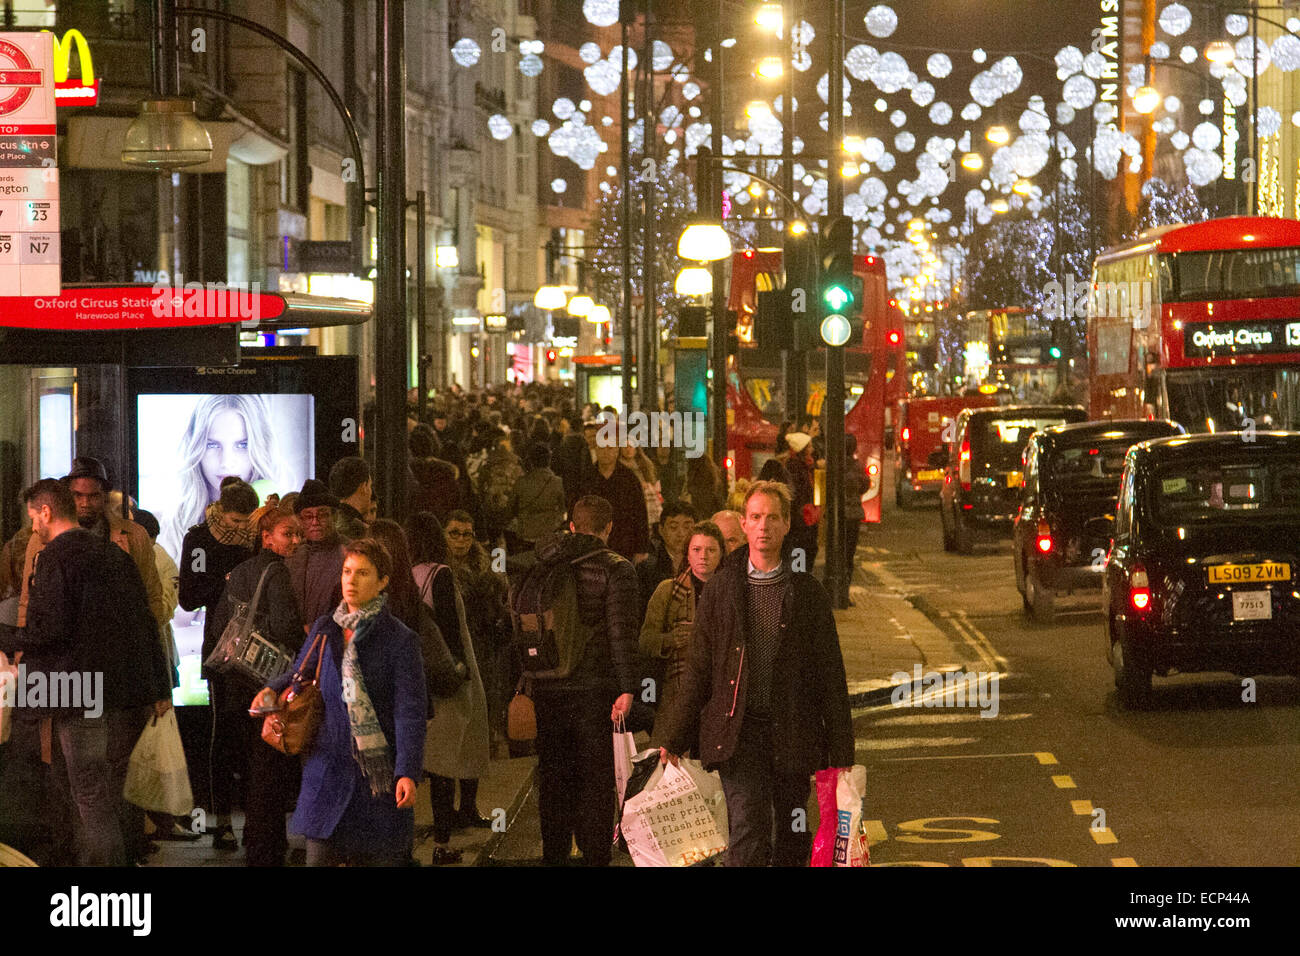 London, UK. 17th Dec, 2014. Oxford street is busy with Christmas shoppers with a week left until the Christmas holidays - Stock Image